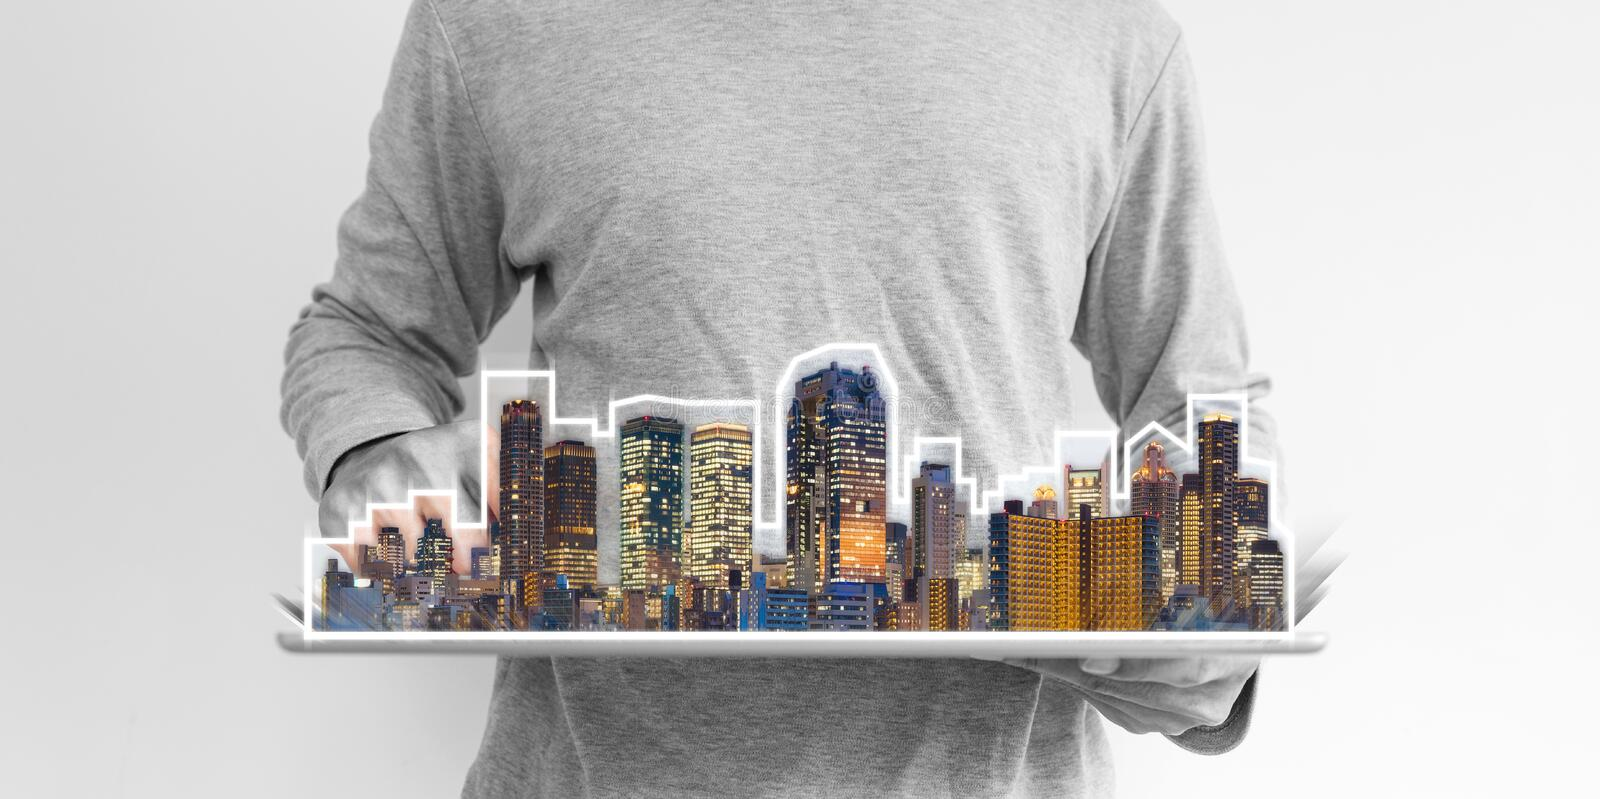 Real estate business, building technology and smart city. a man using digital tablet with buildings hologram. Real estate business, buildings technology and stock images